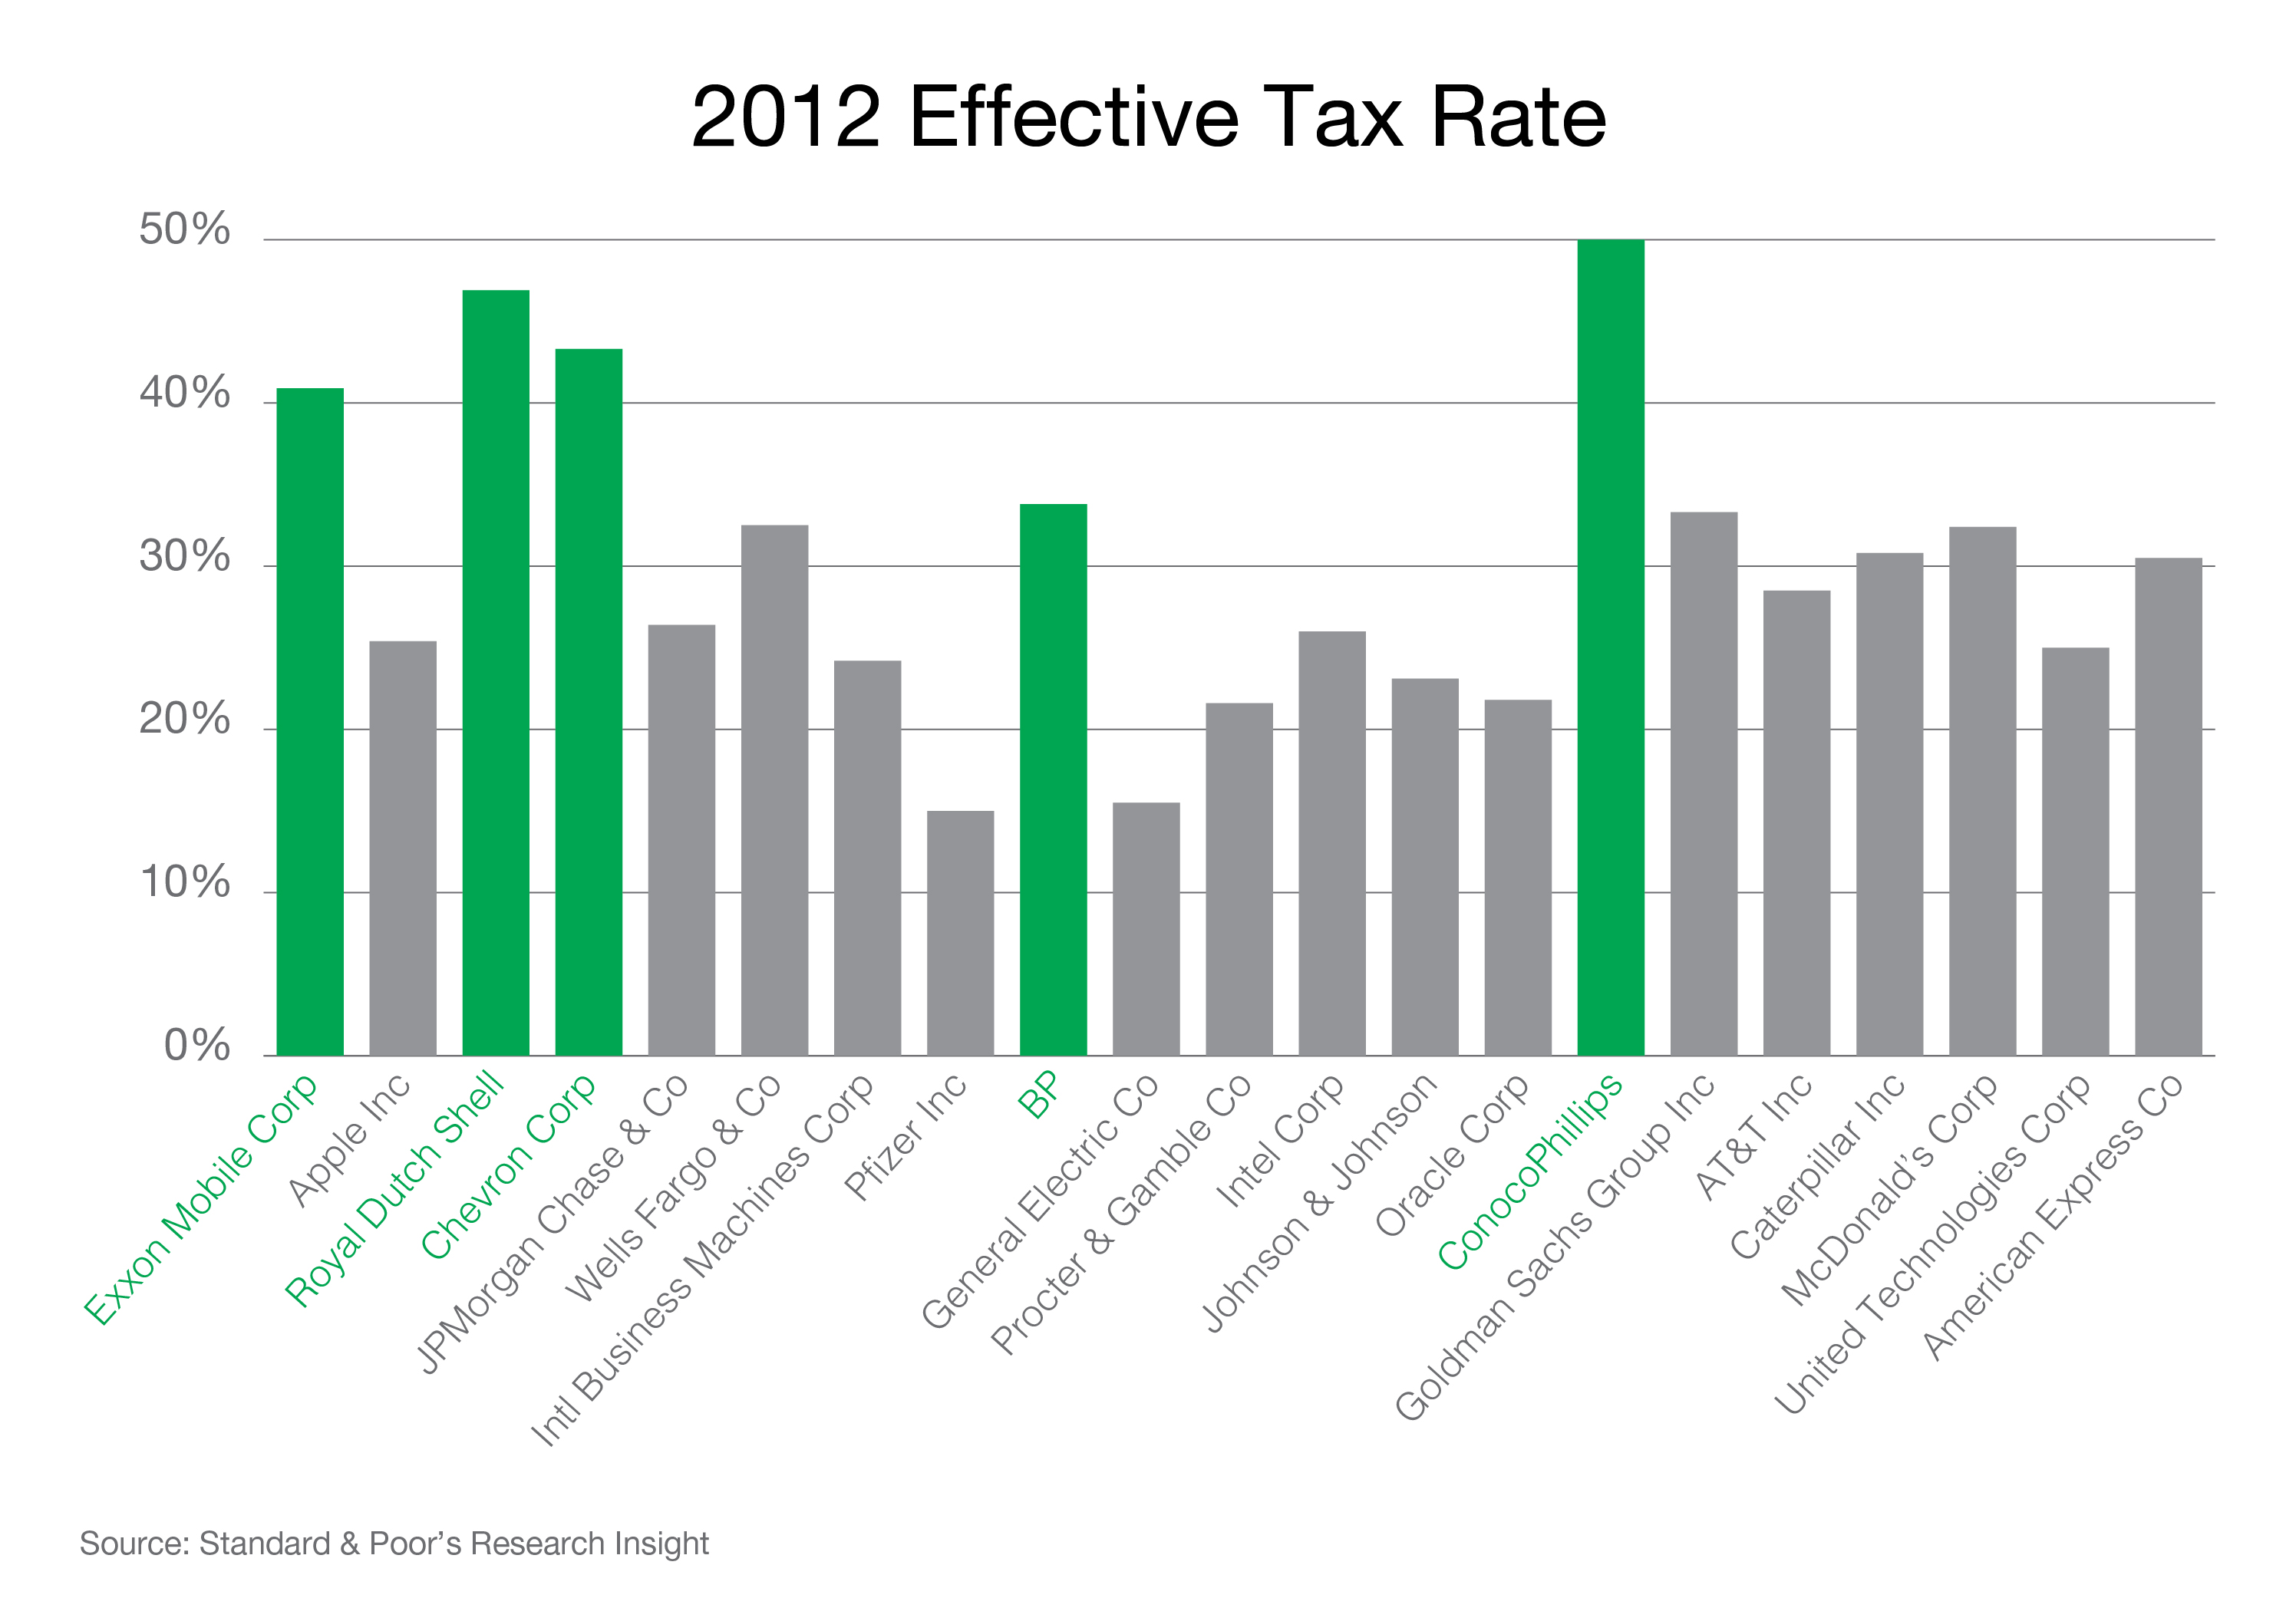 Effective Tax Rate 2012